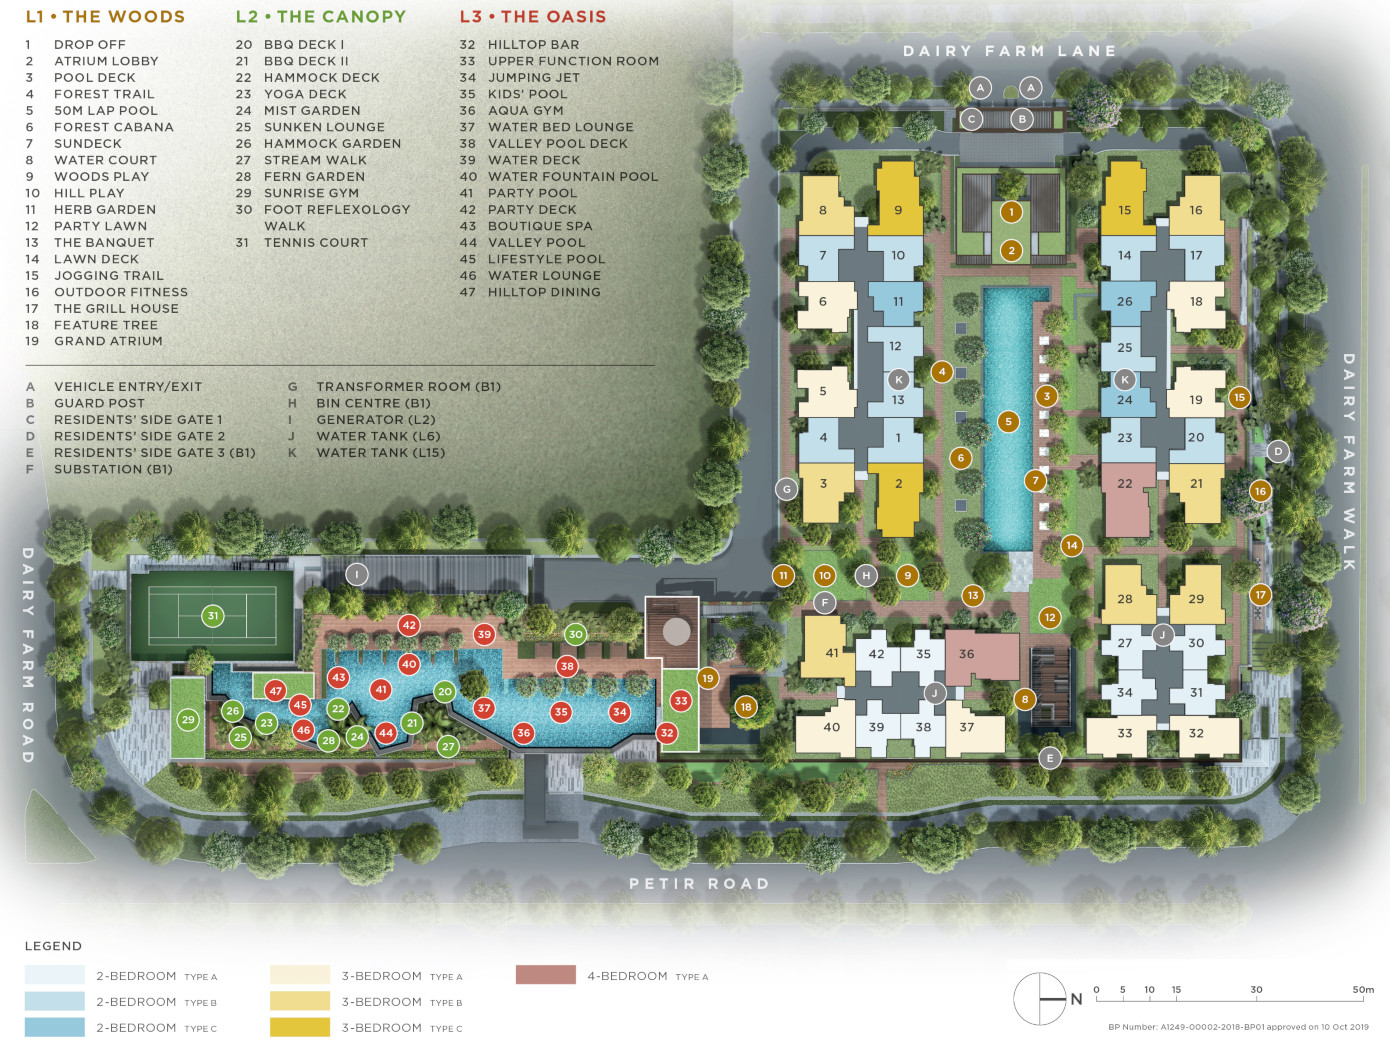 Dairy Farm Residence Site Plan